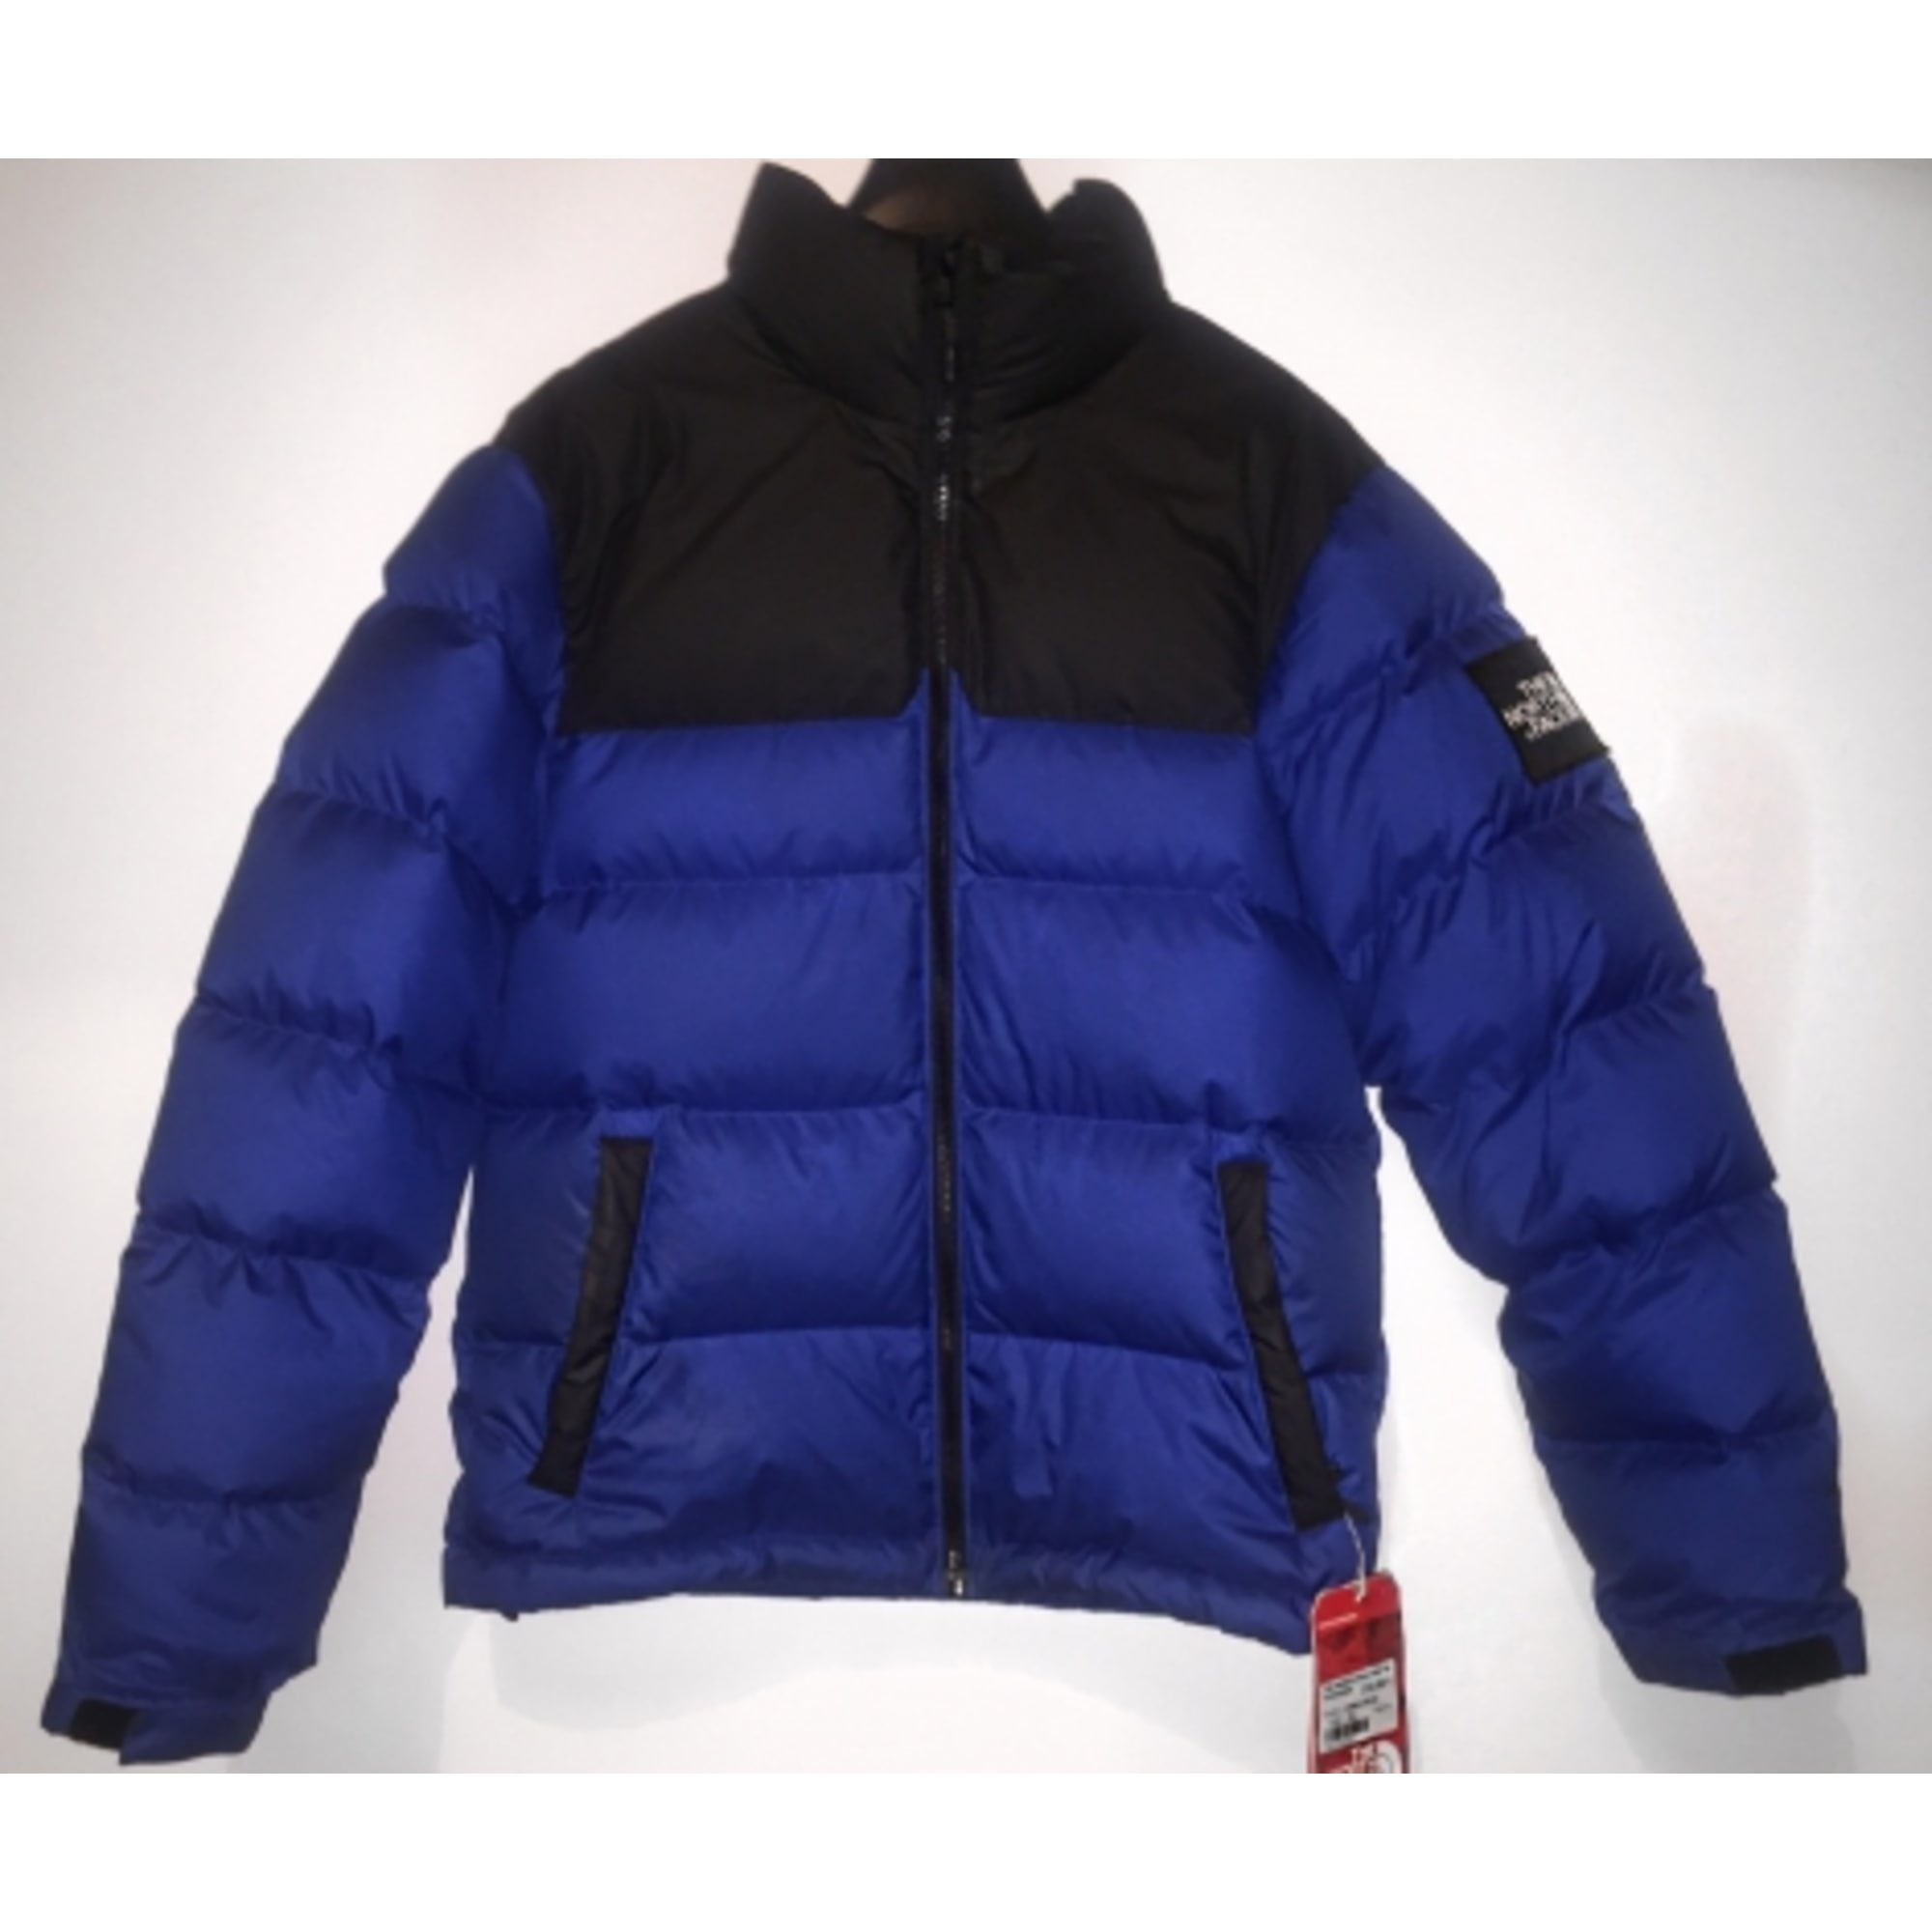 443f40b8a16 Doudoune THE NORTH FACE 44 (S) bleu - 7477643